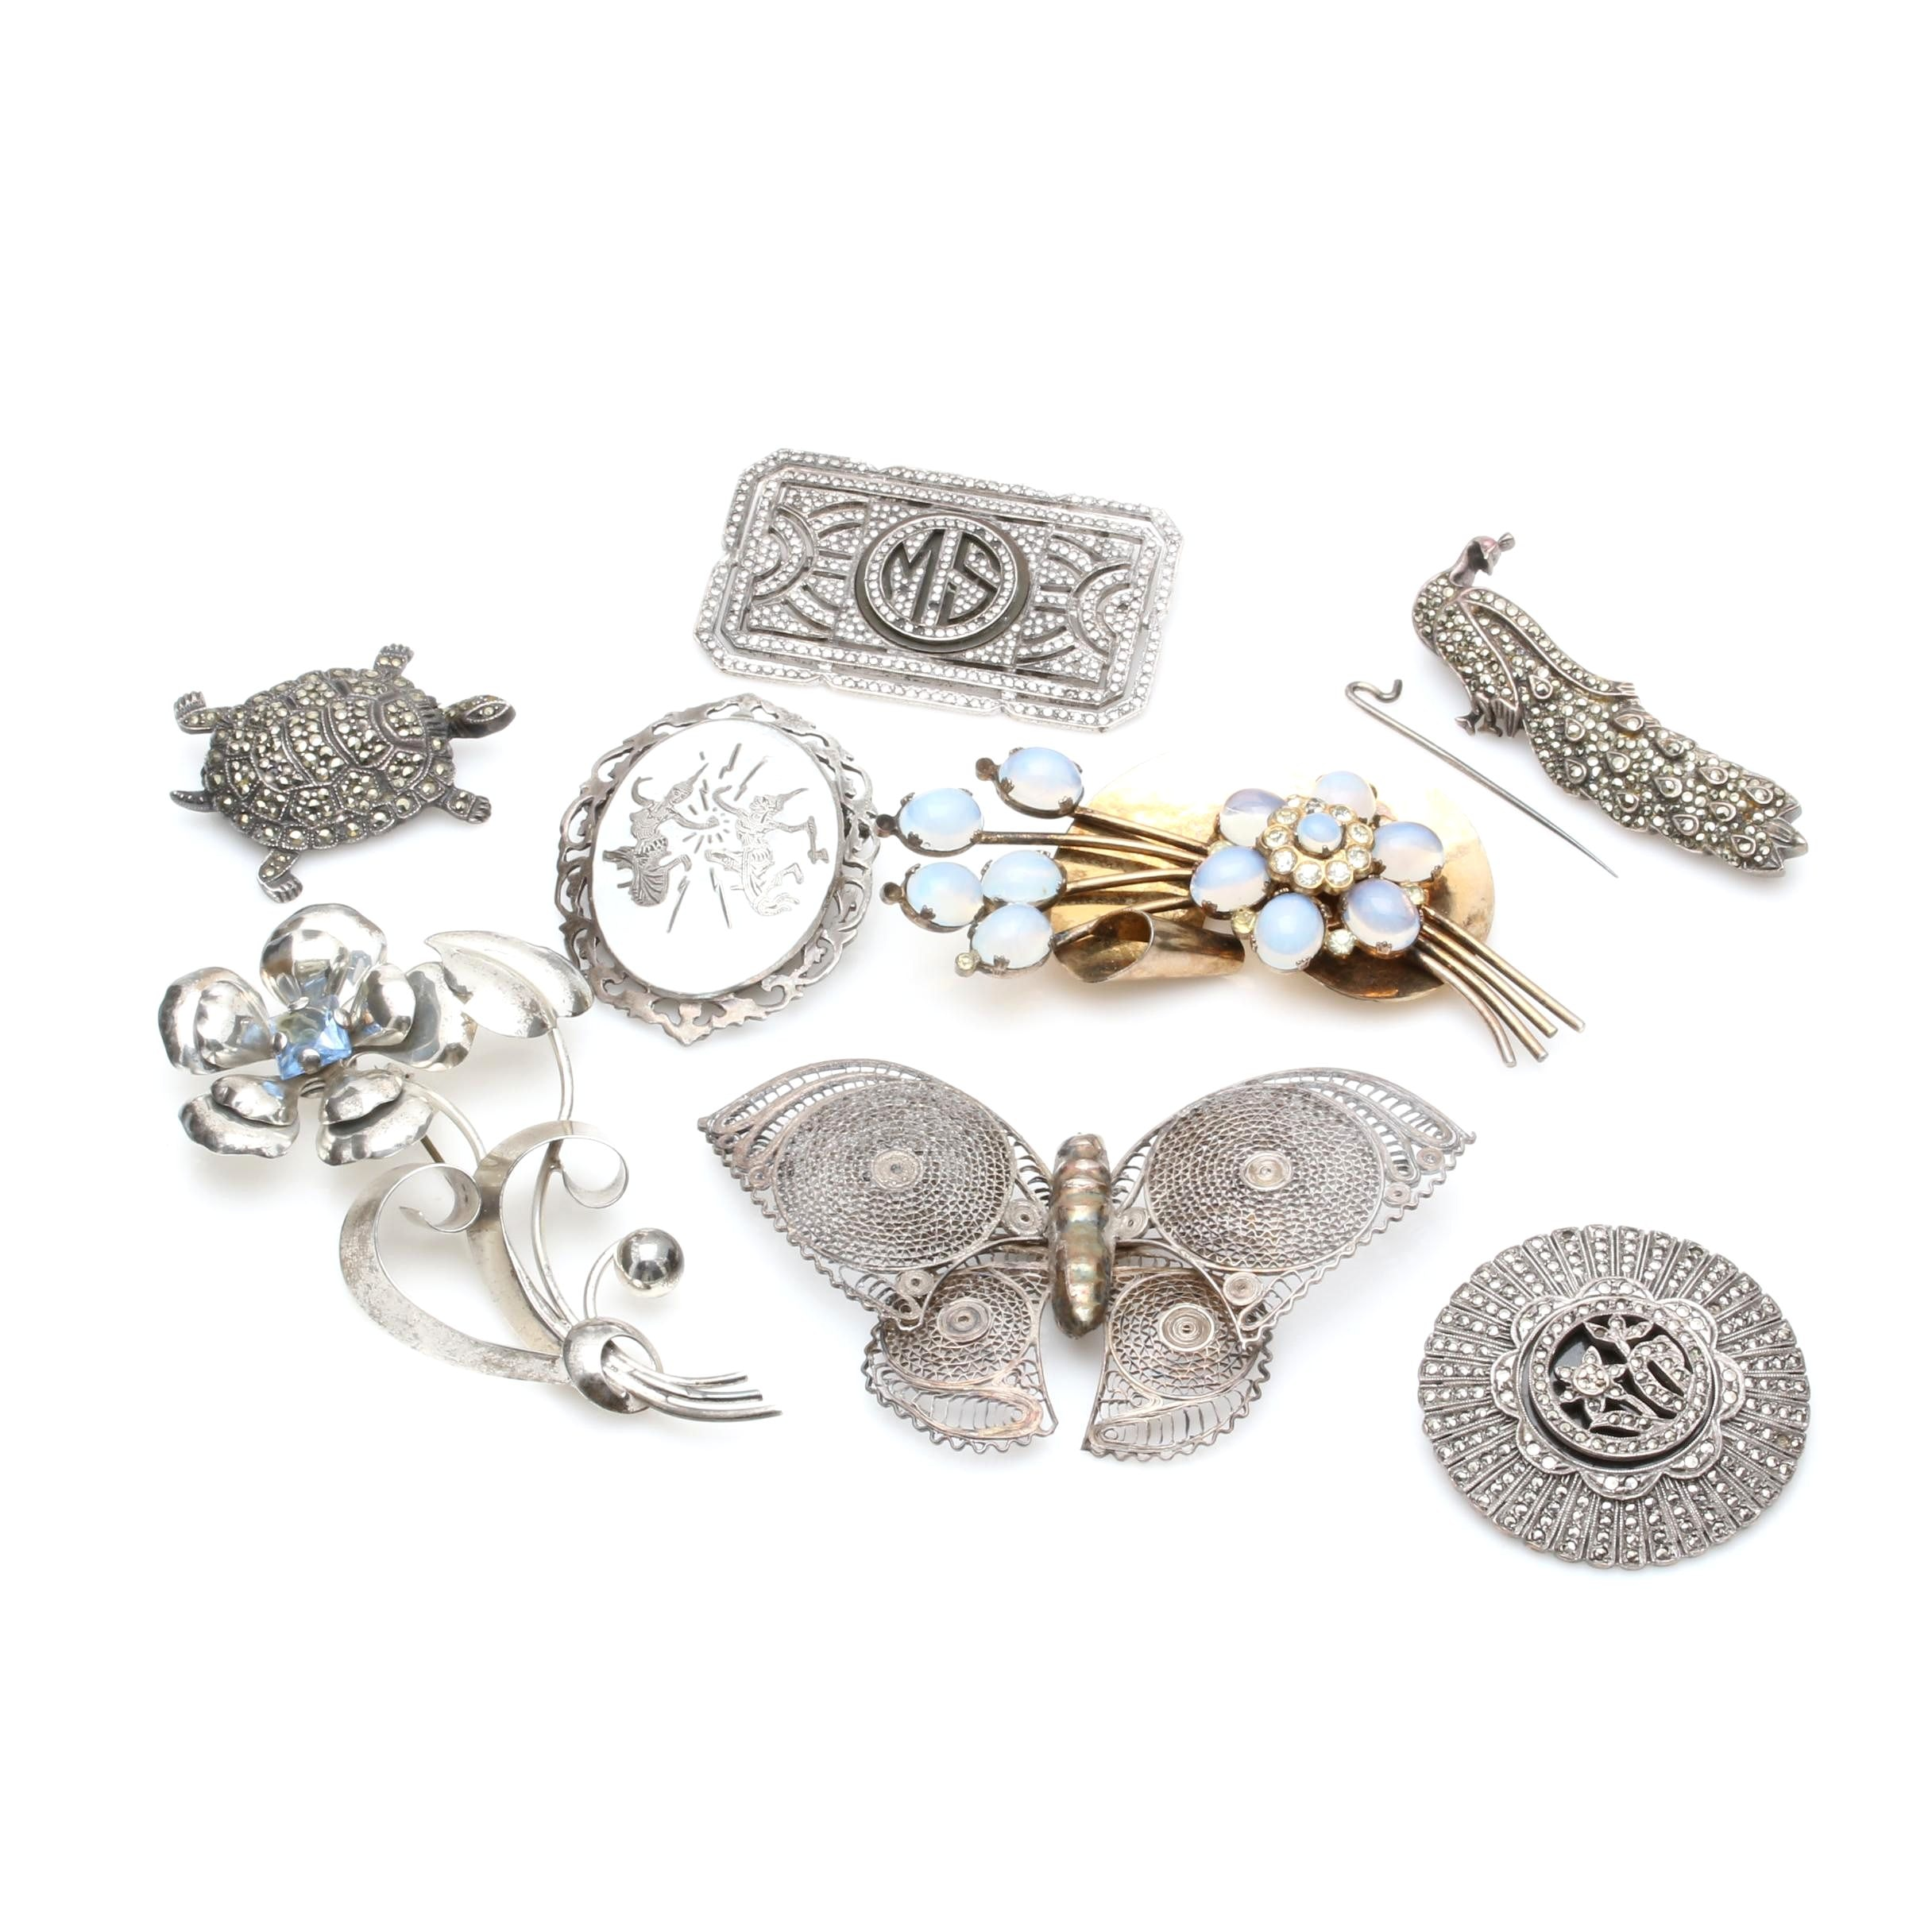 Sterling Silver Brooch Assortment Including Marcasite